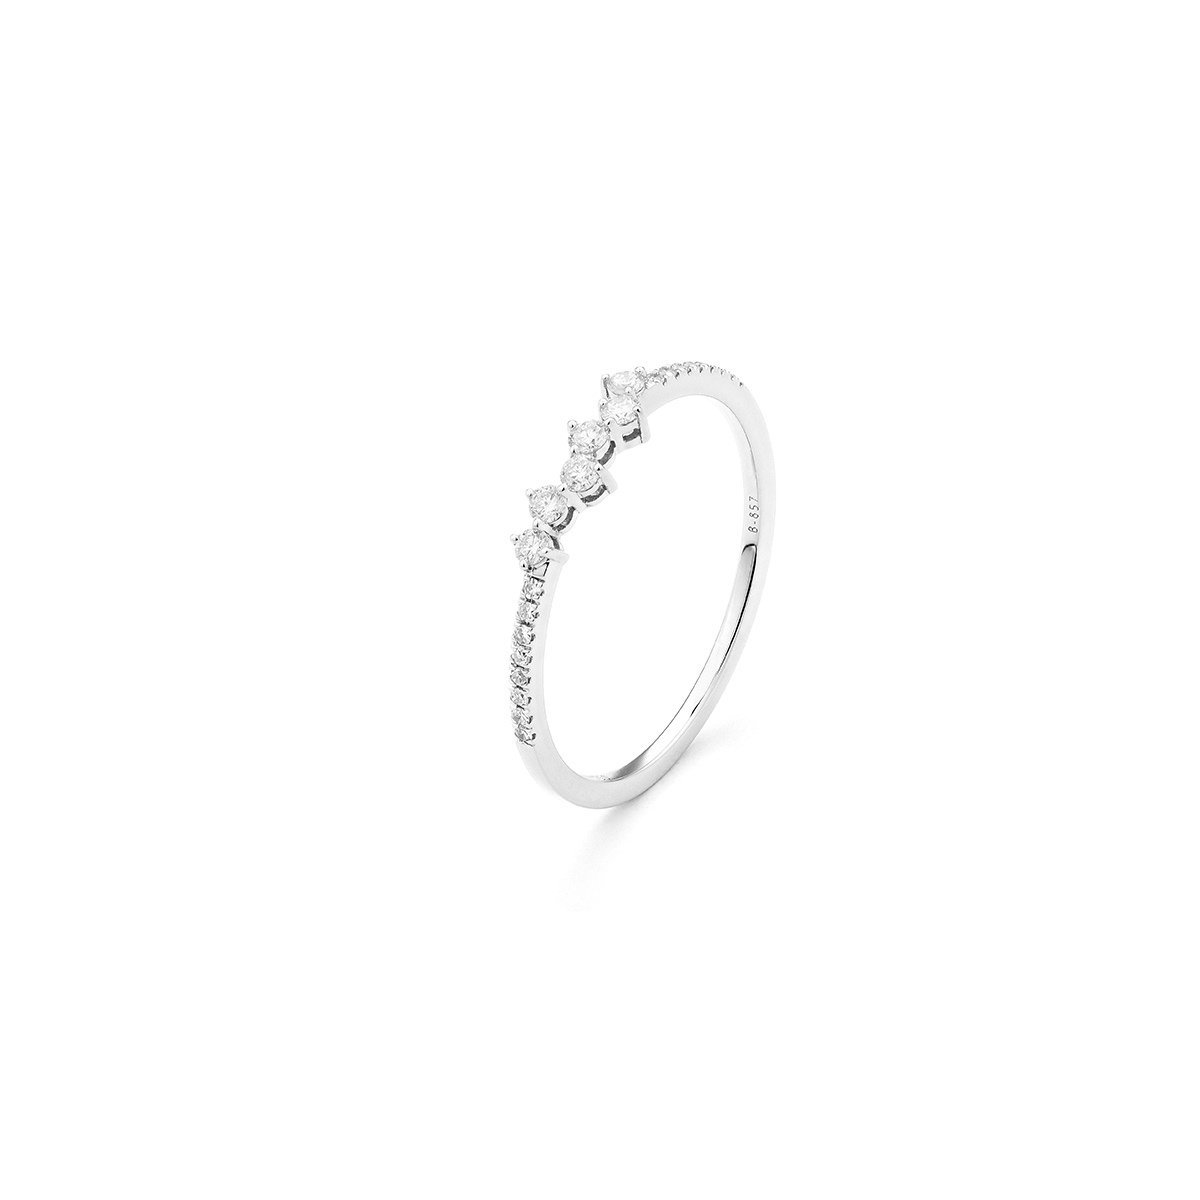 Bague en or blanc et diamants de 0.17ct